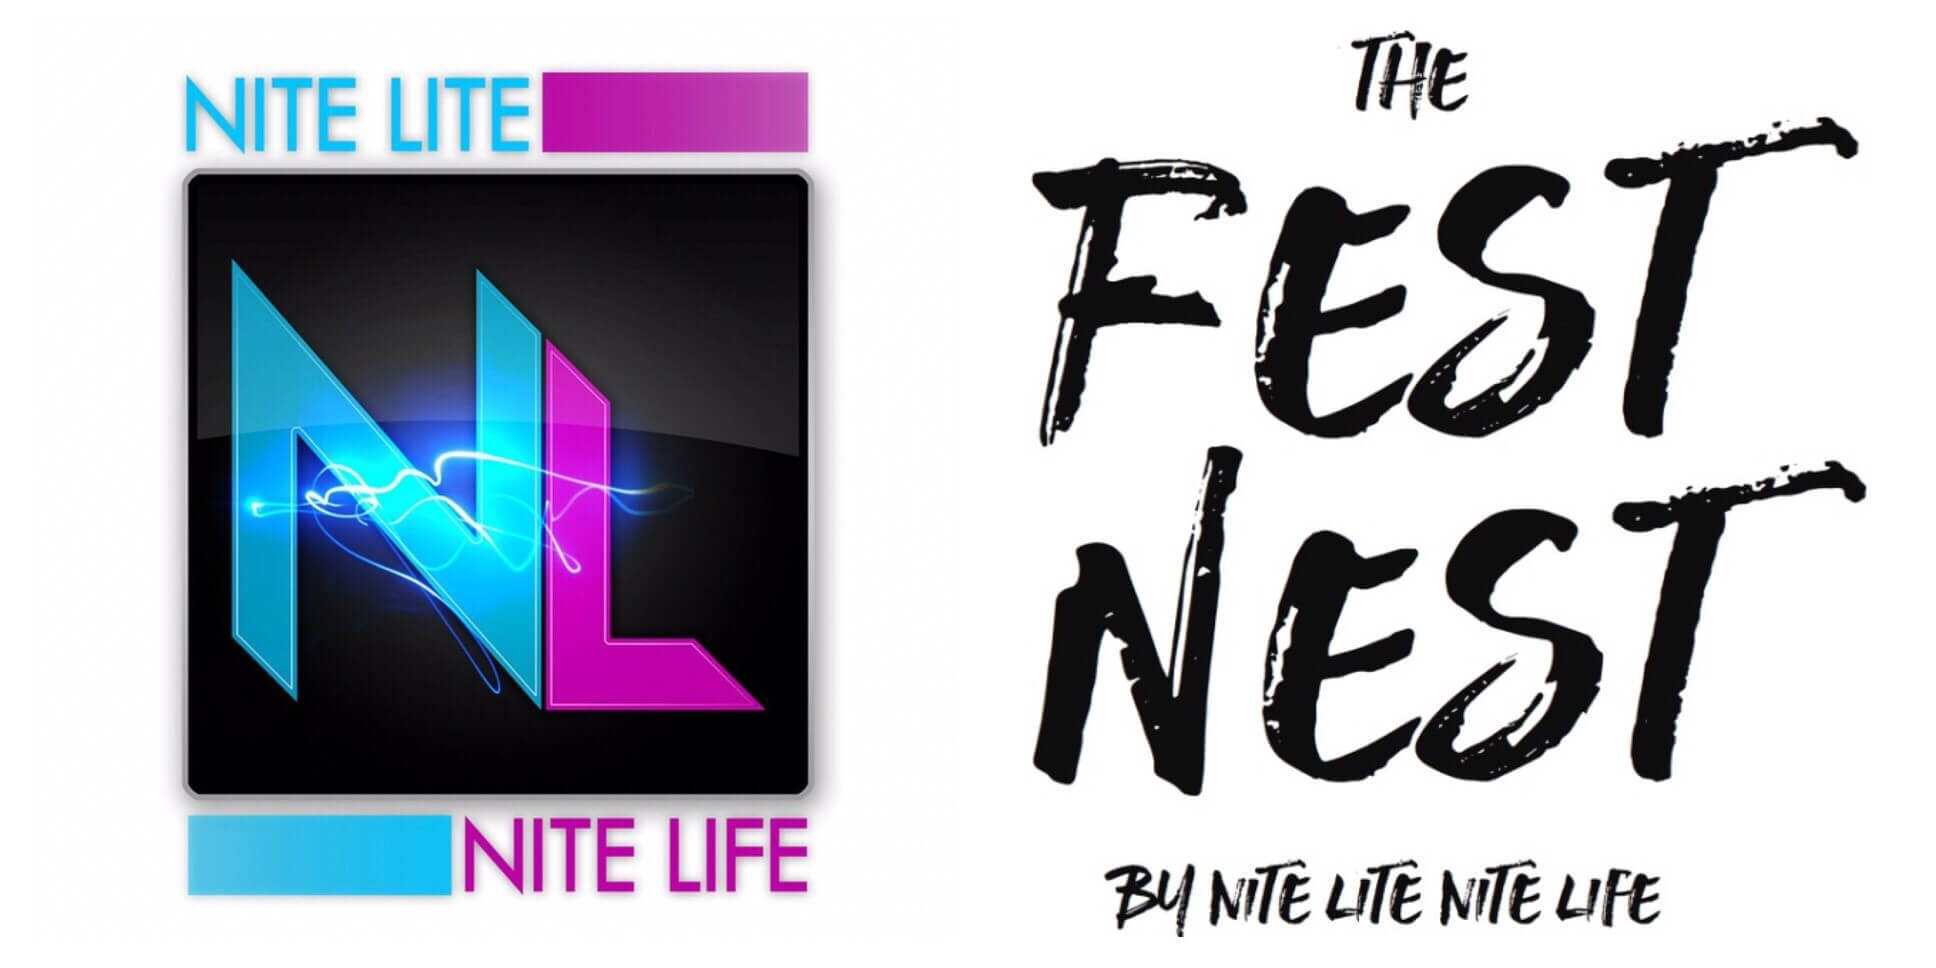 nite lite nite life and fest nest